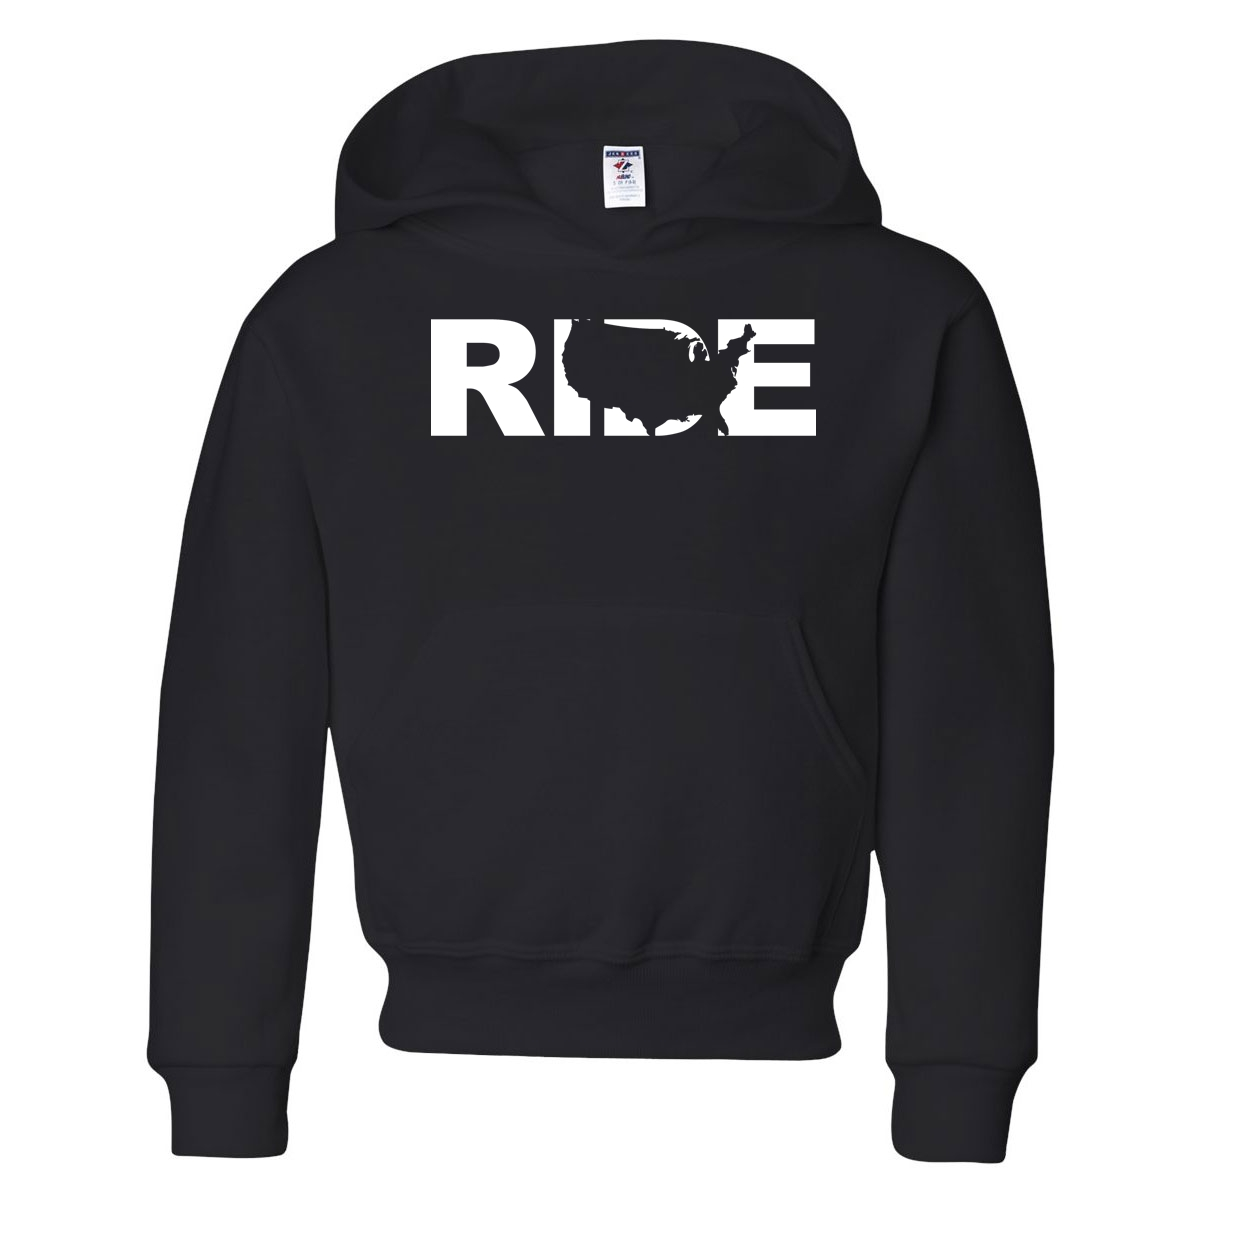 Ride United States Classic Youth Hoodie Black (White Logo)